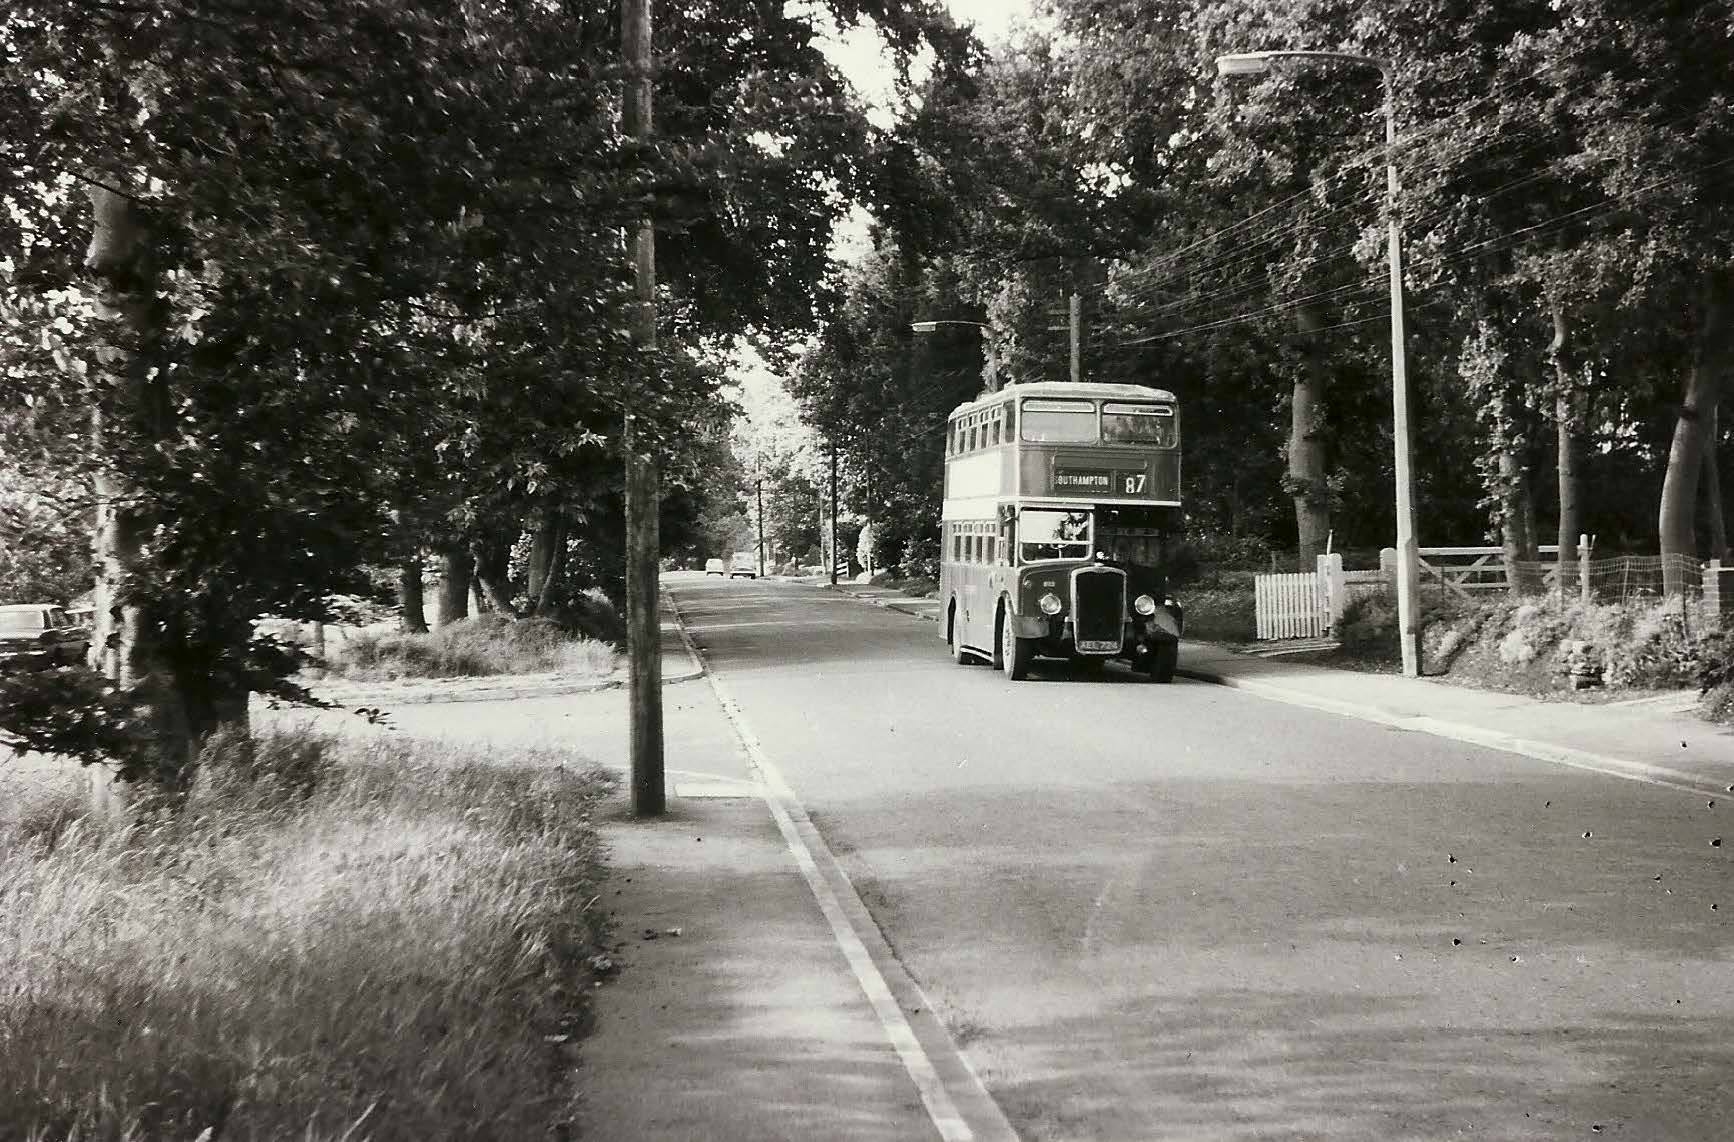 Do you remember the Hants & Dorset 87 route?